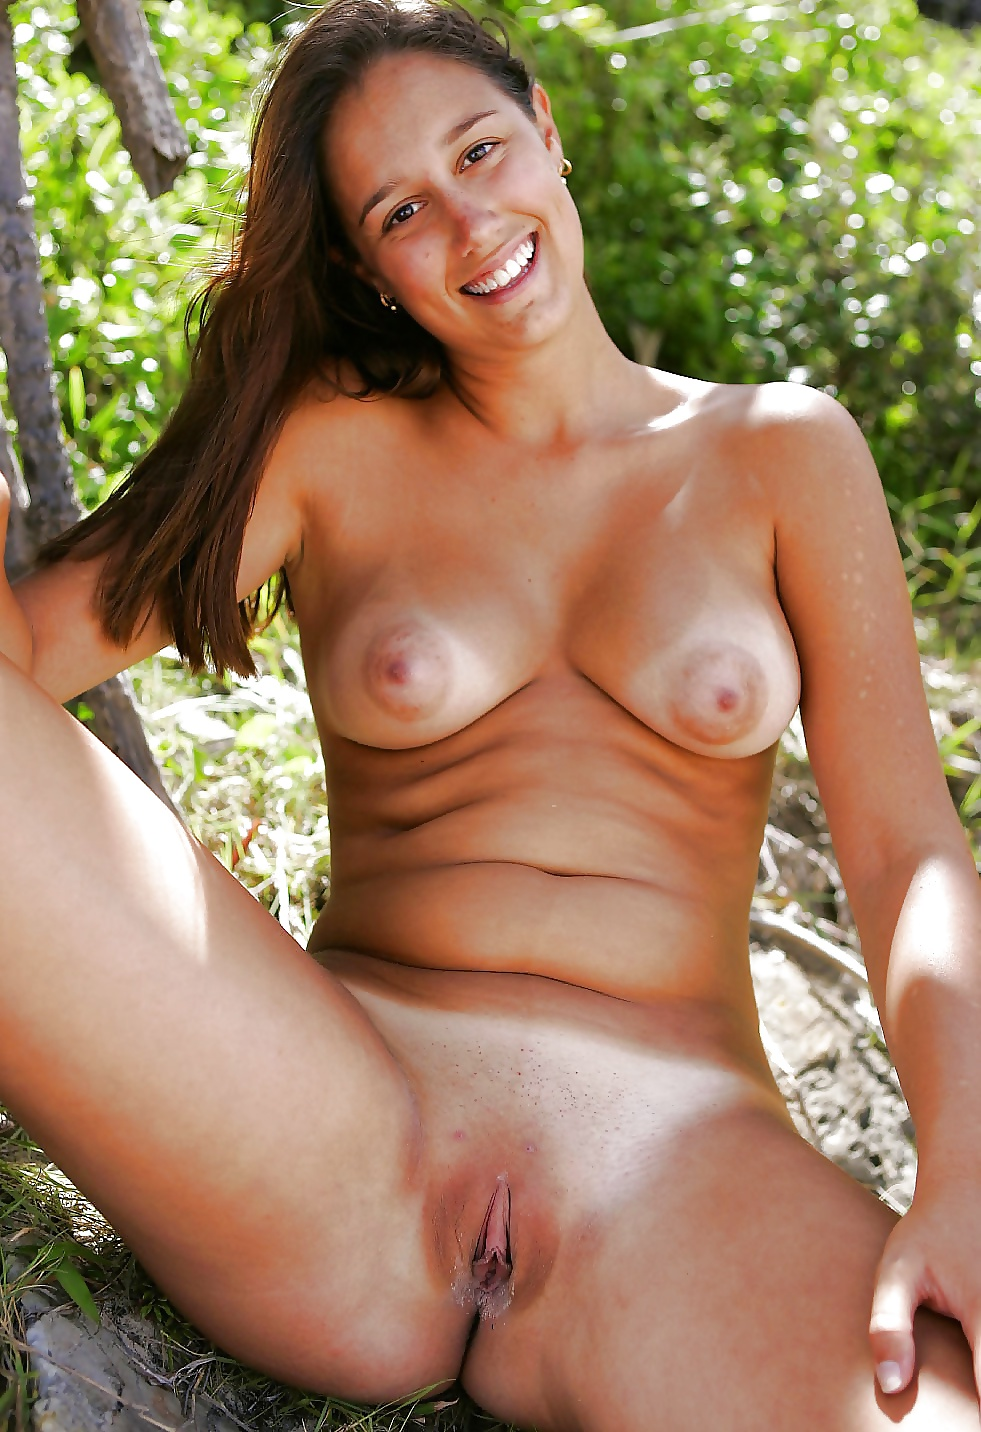 xxx video hd Old milf pic